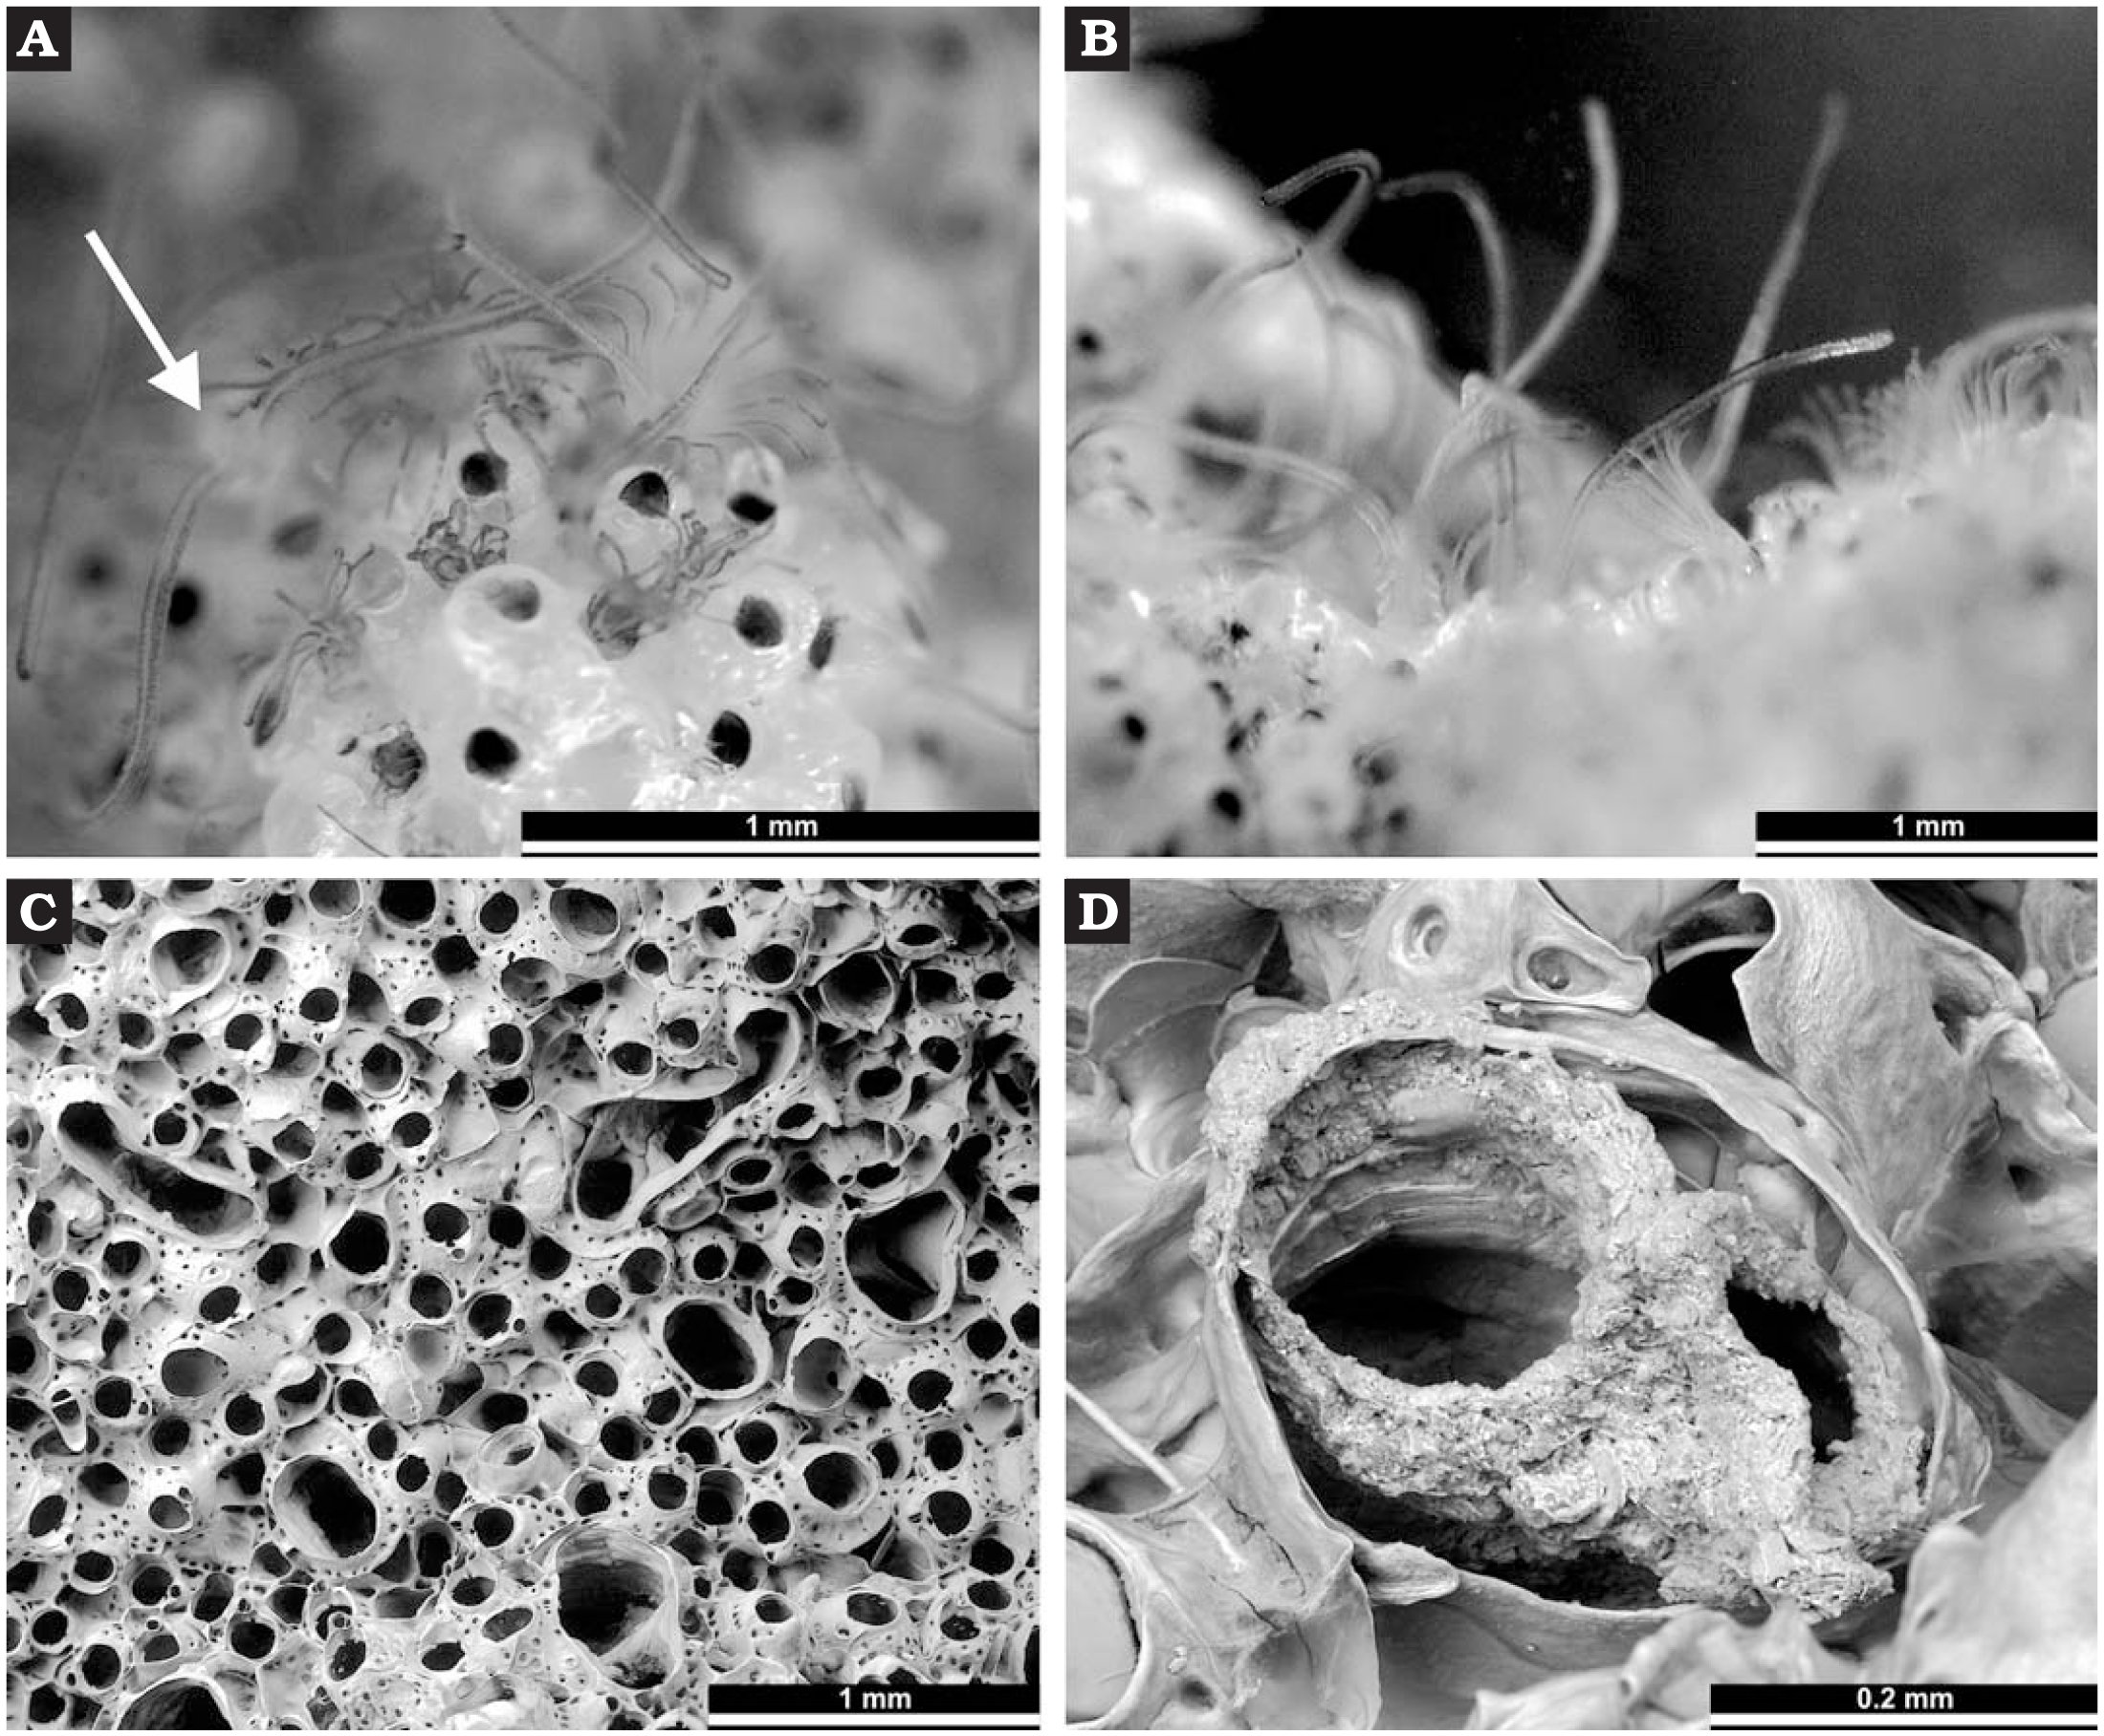 A New Middle Devonian Cystoporate Bryozoan from Germany Containing a